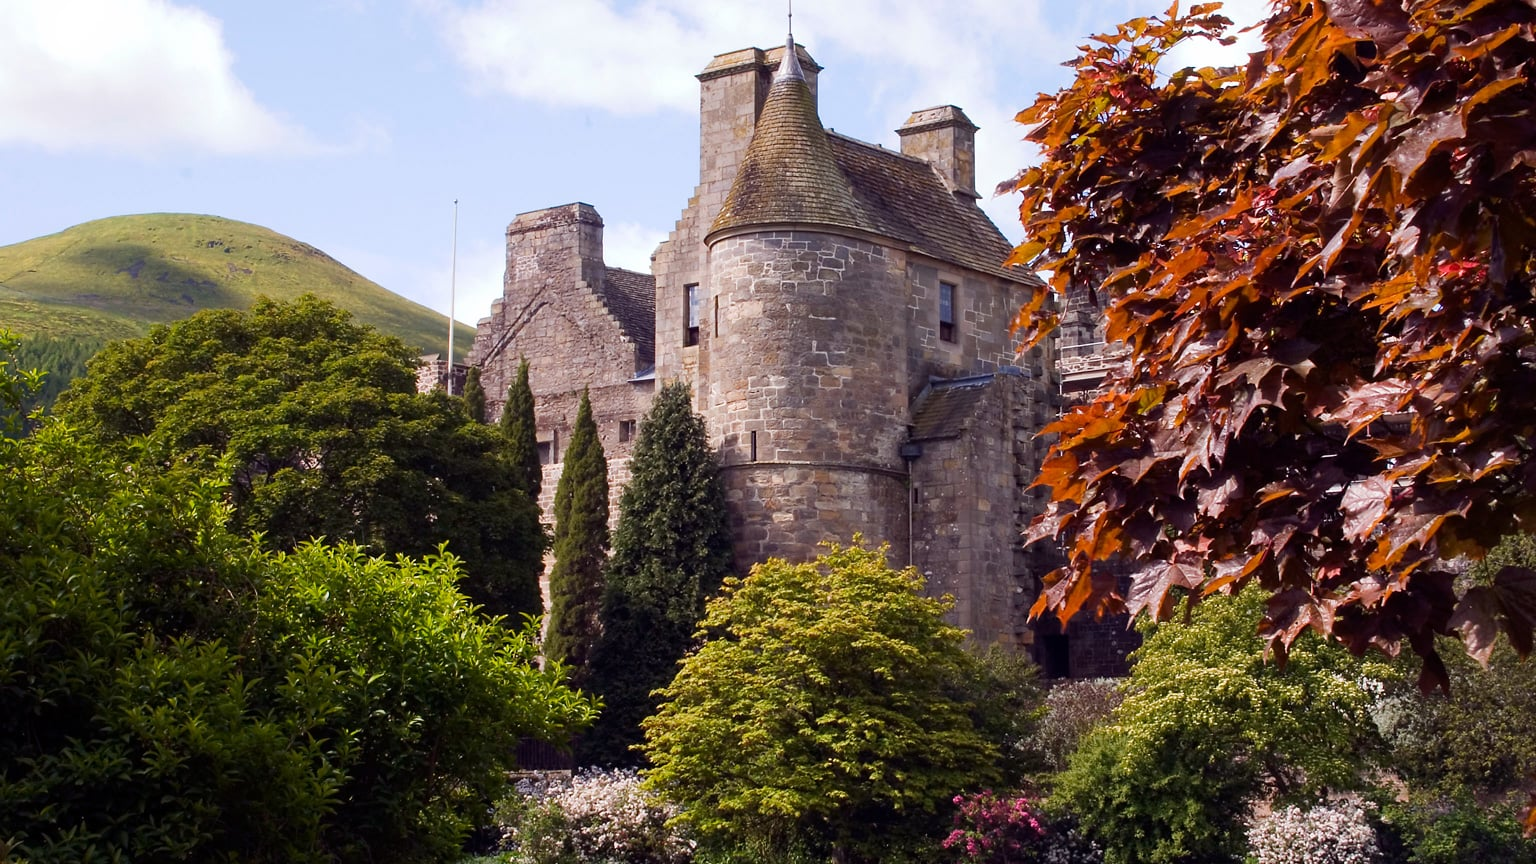 6. Falkland Palace and Garden in Scotland - Free entry with National Art Pass